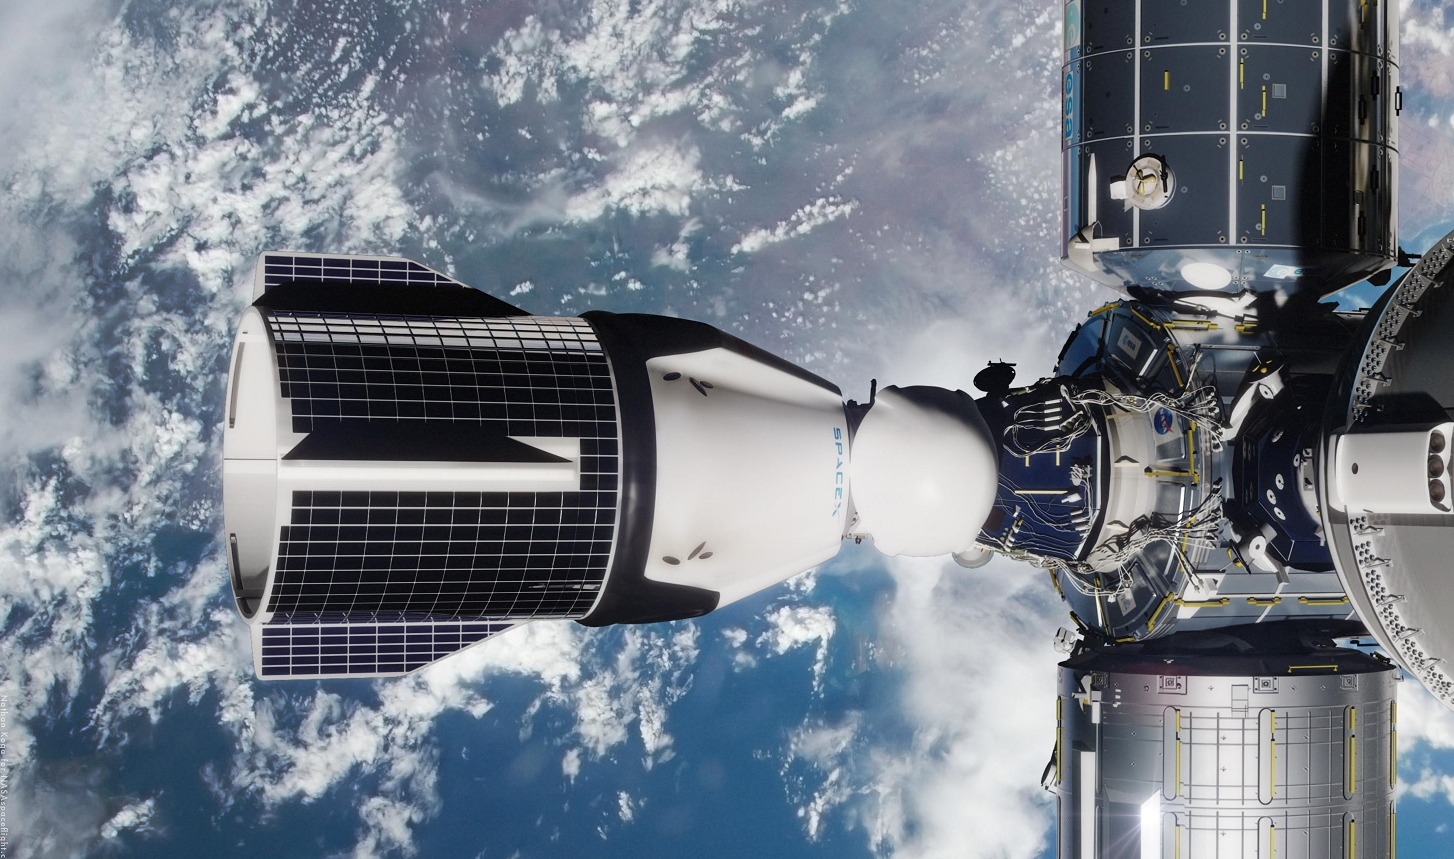 SpaceX makes progress toward Commercial Crew debut